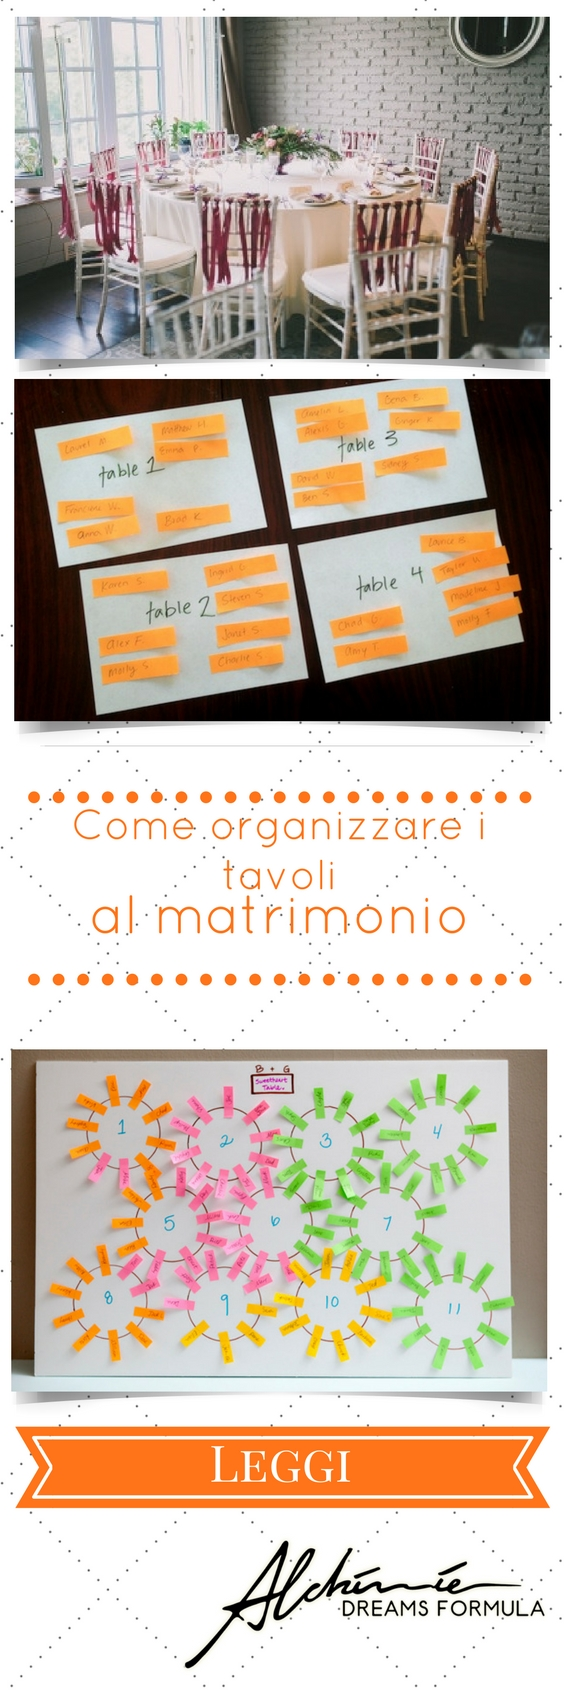 b66256f6e7c2 Come organizzare i tavoli al matrimonio - How to organize the tables at the  wedding